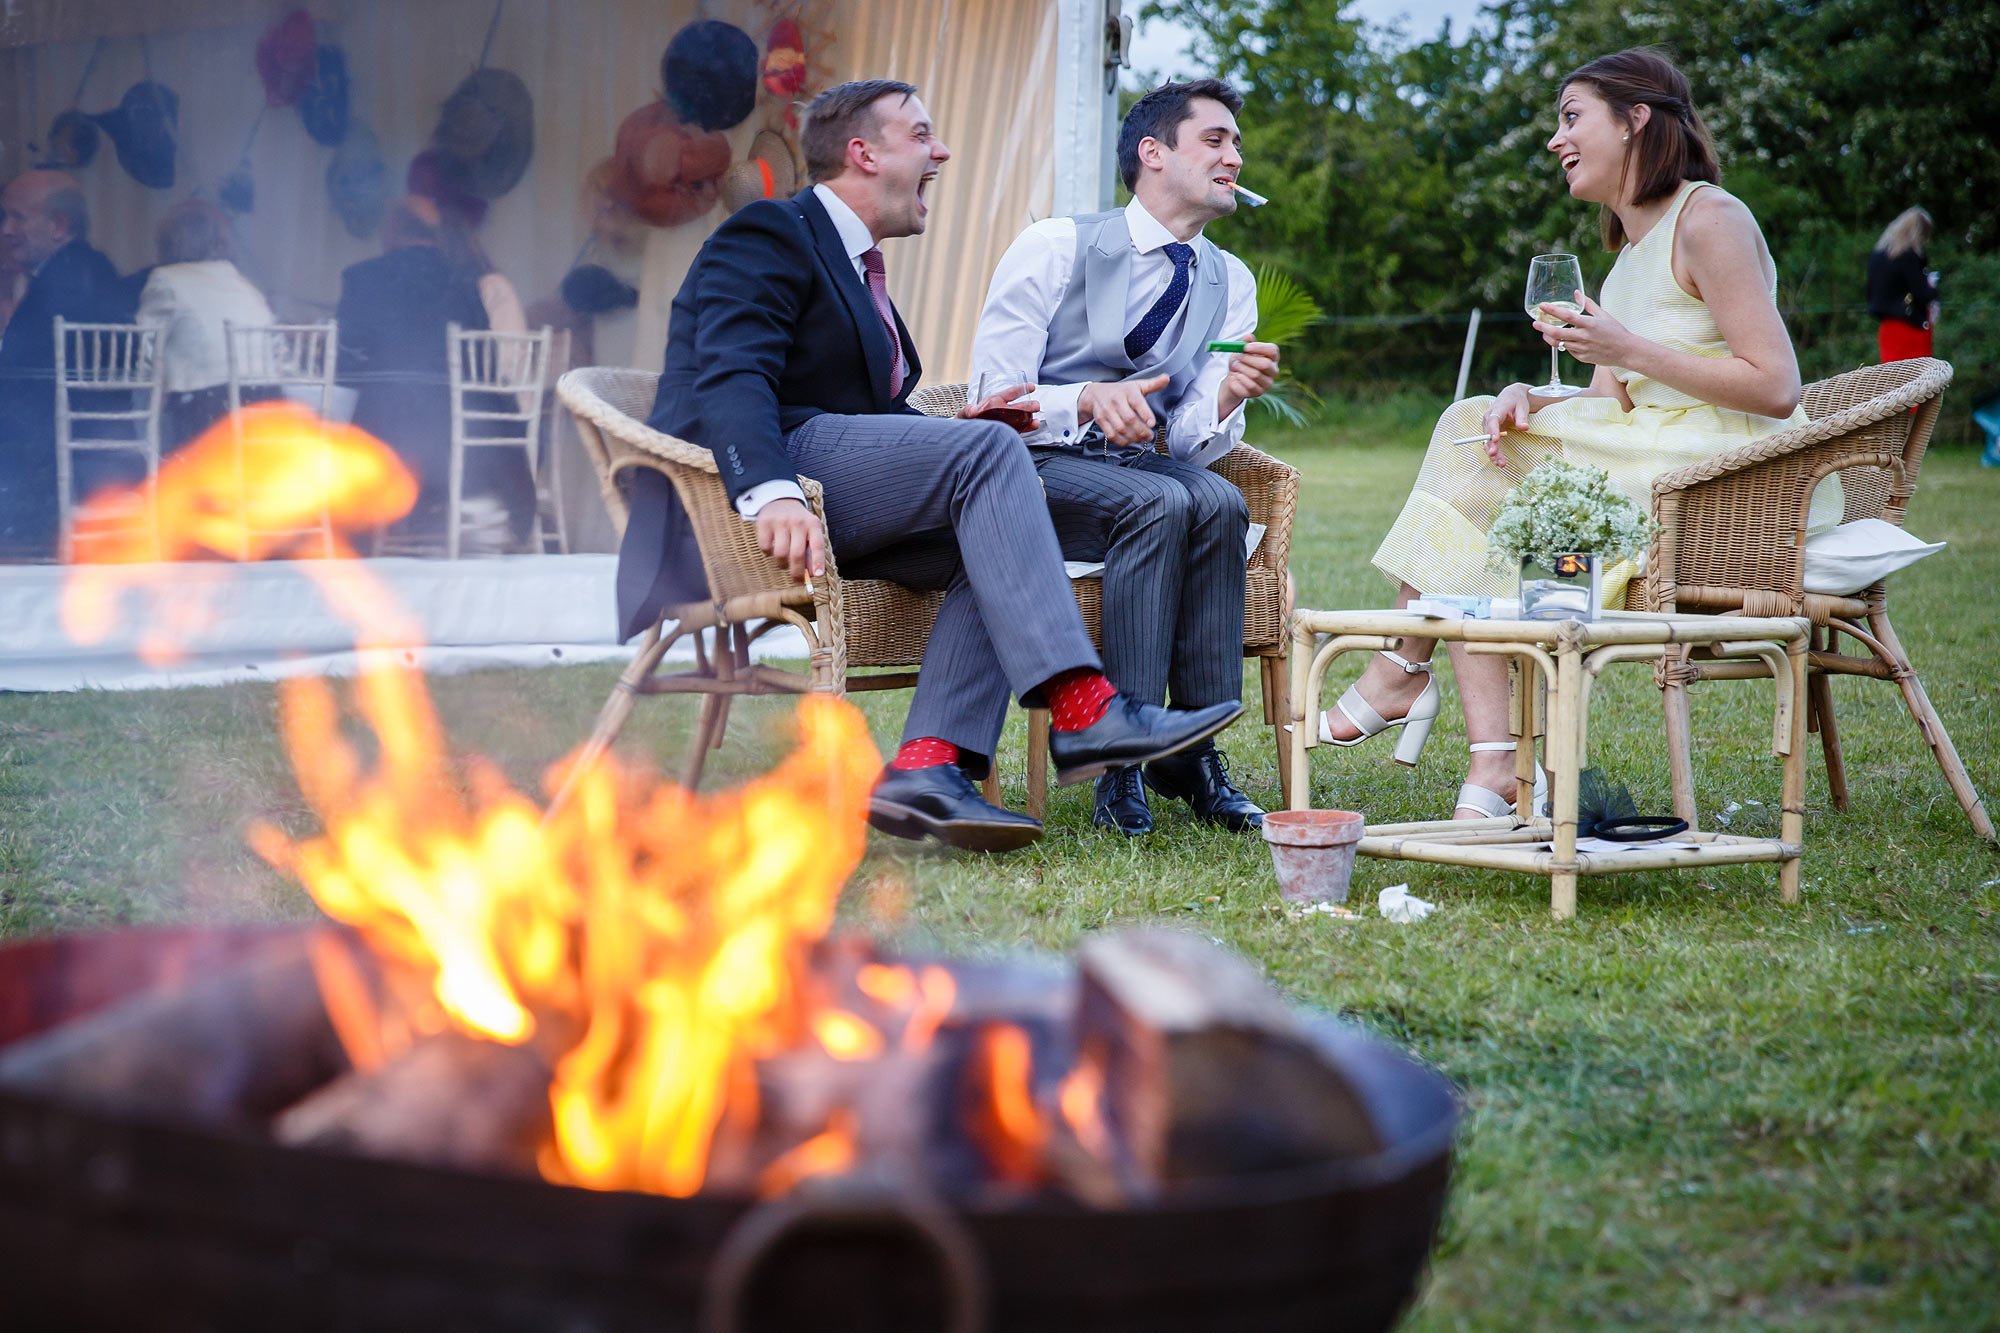 wedding fire pits bromley wedding photographer